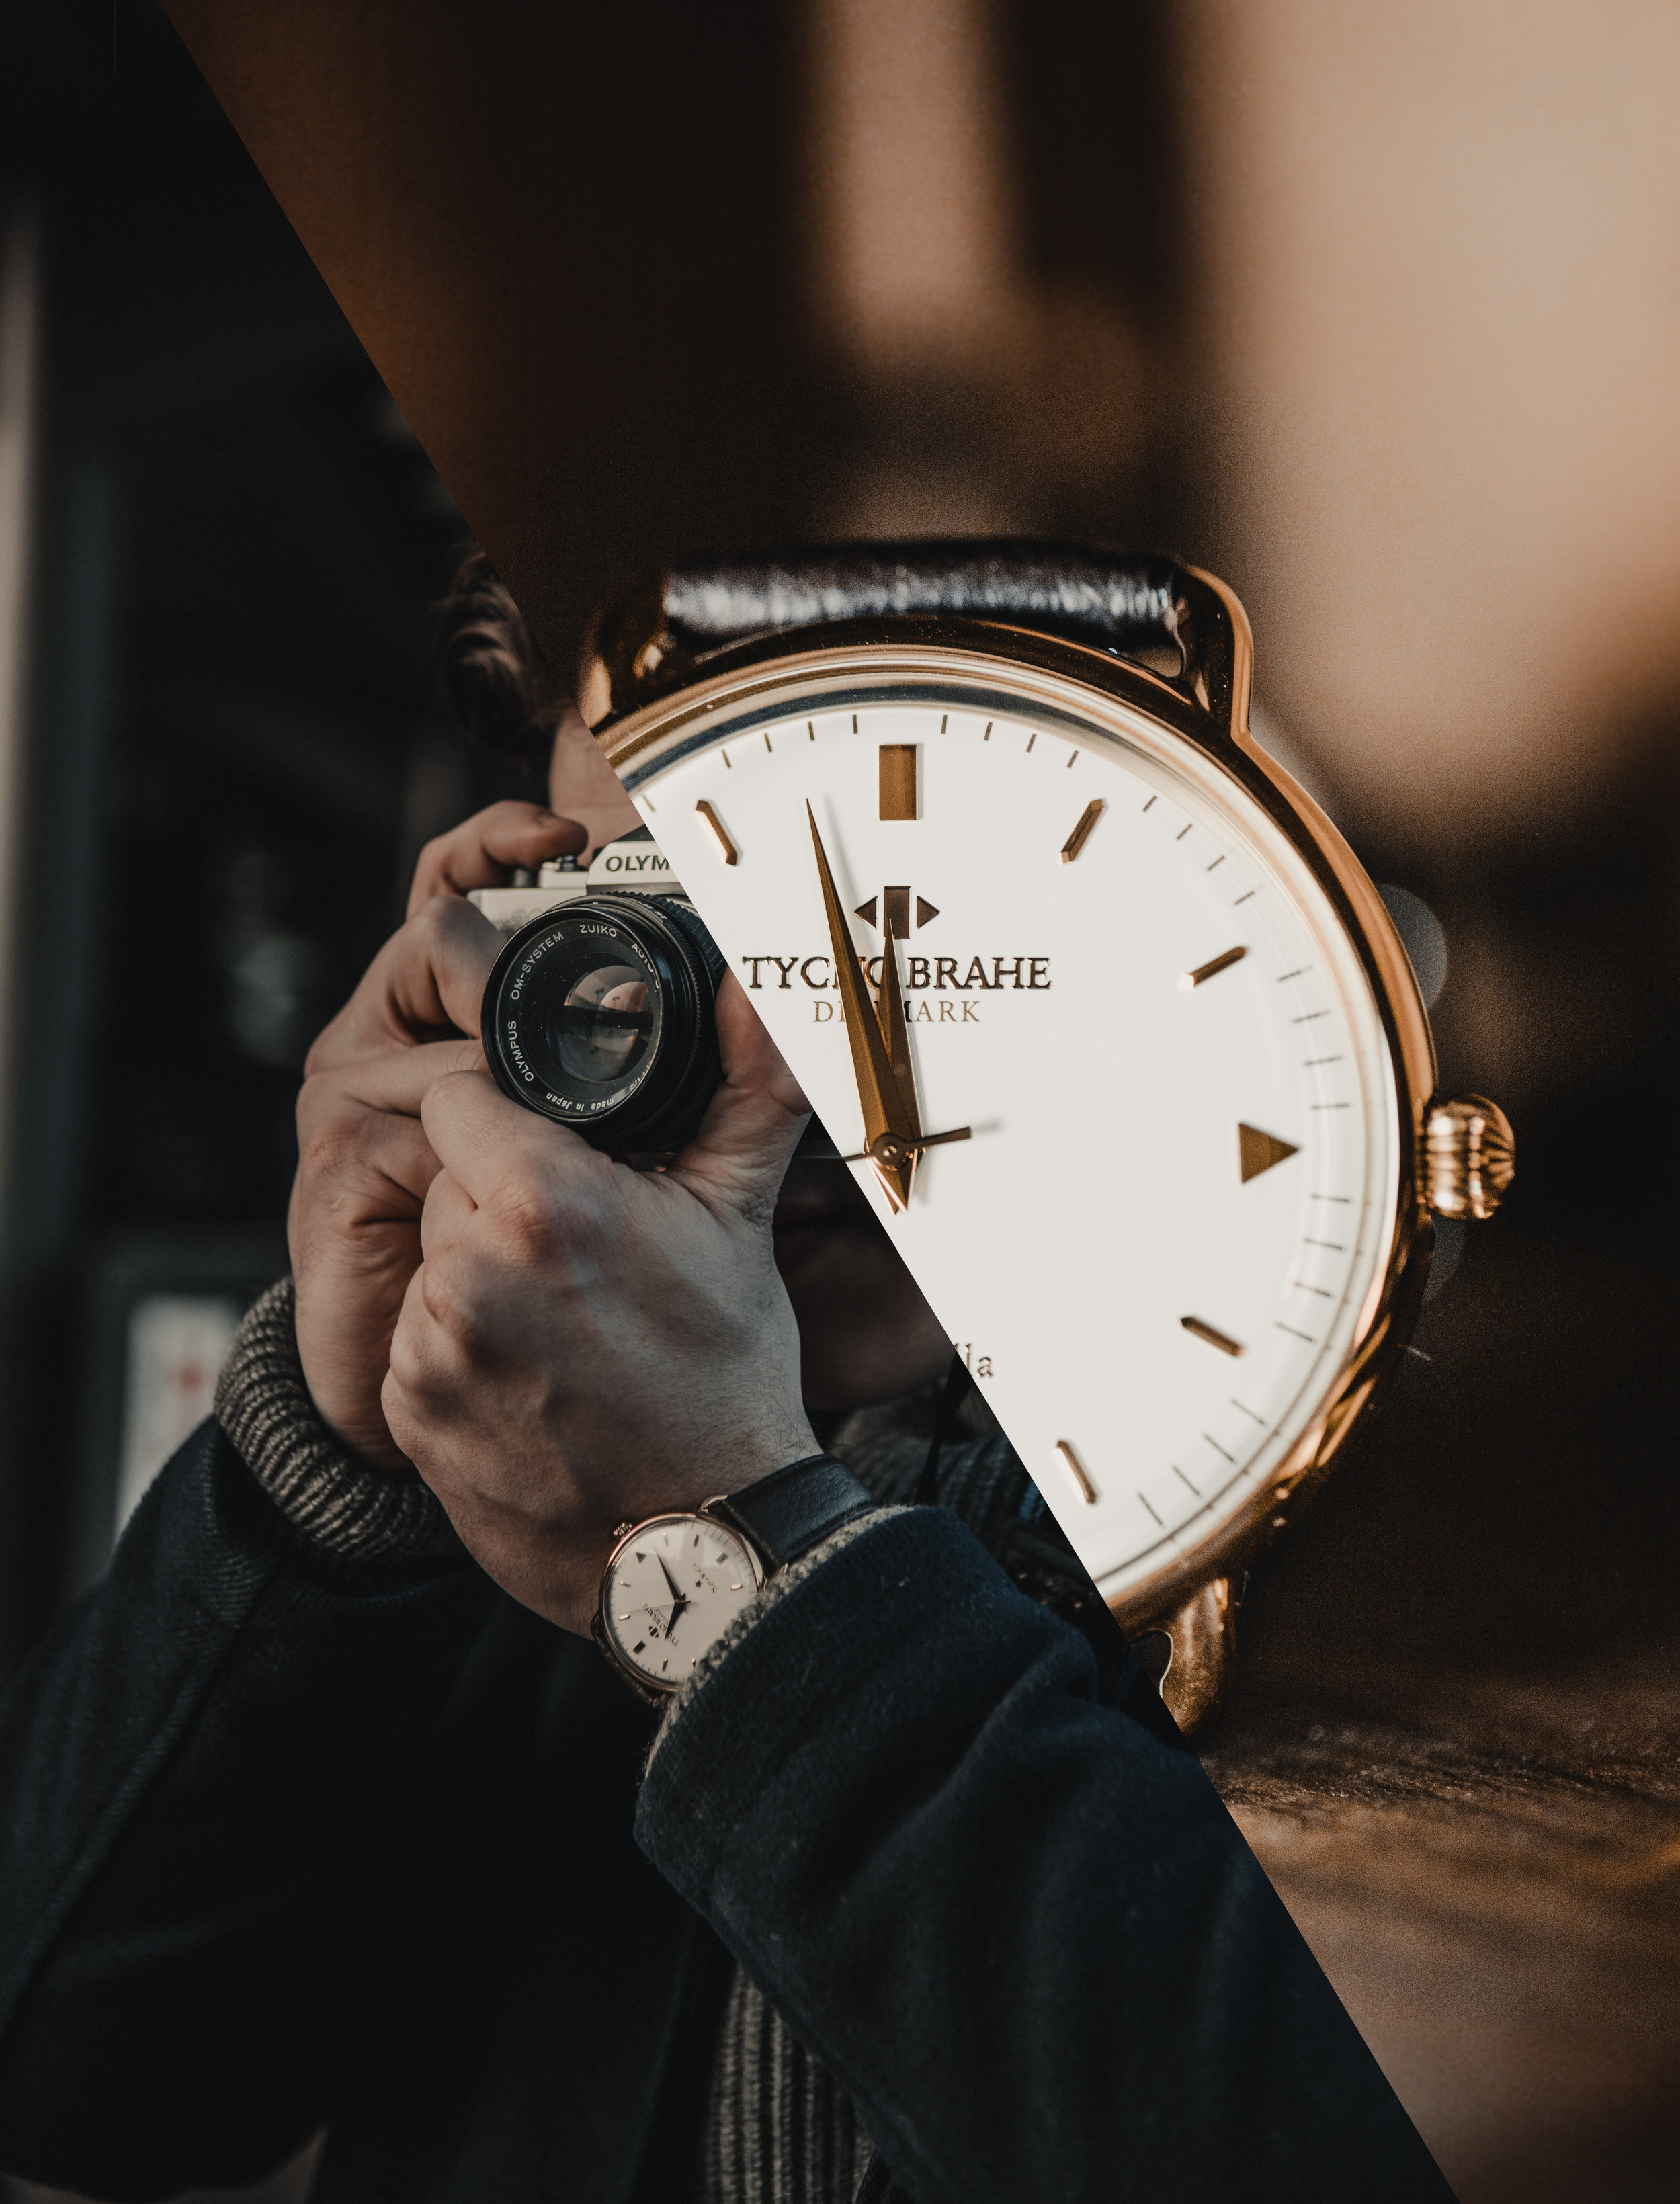 shoot With thyco brahe watches -